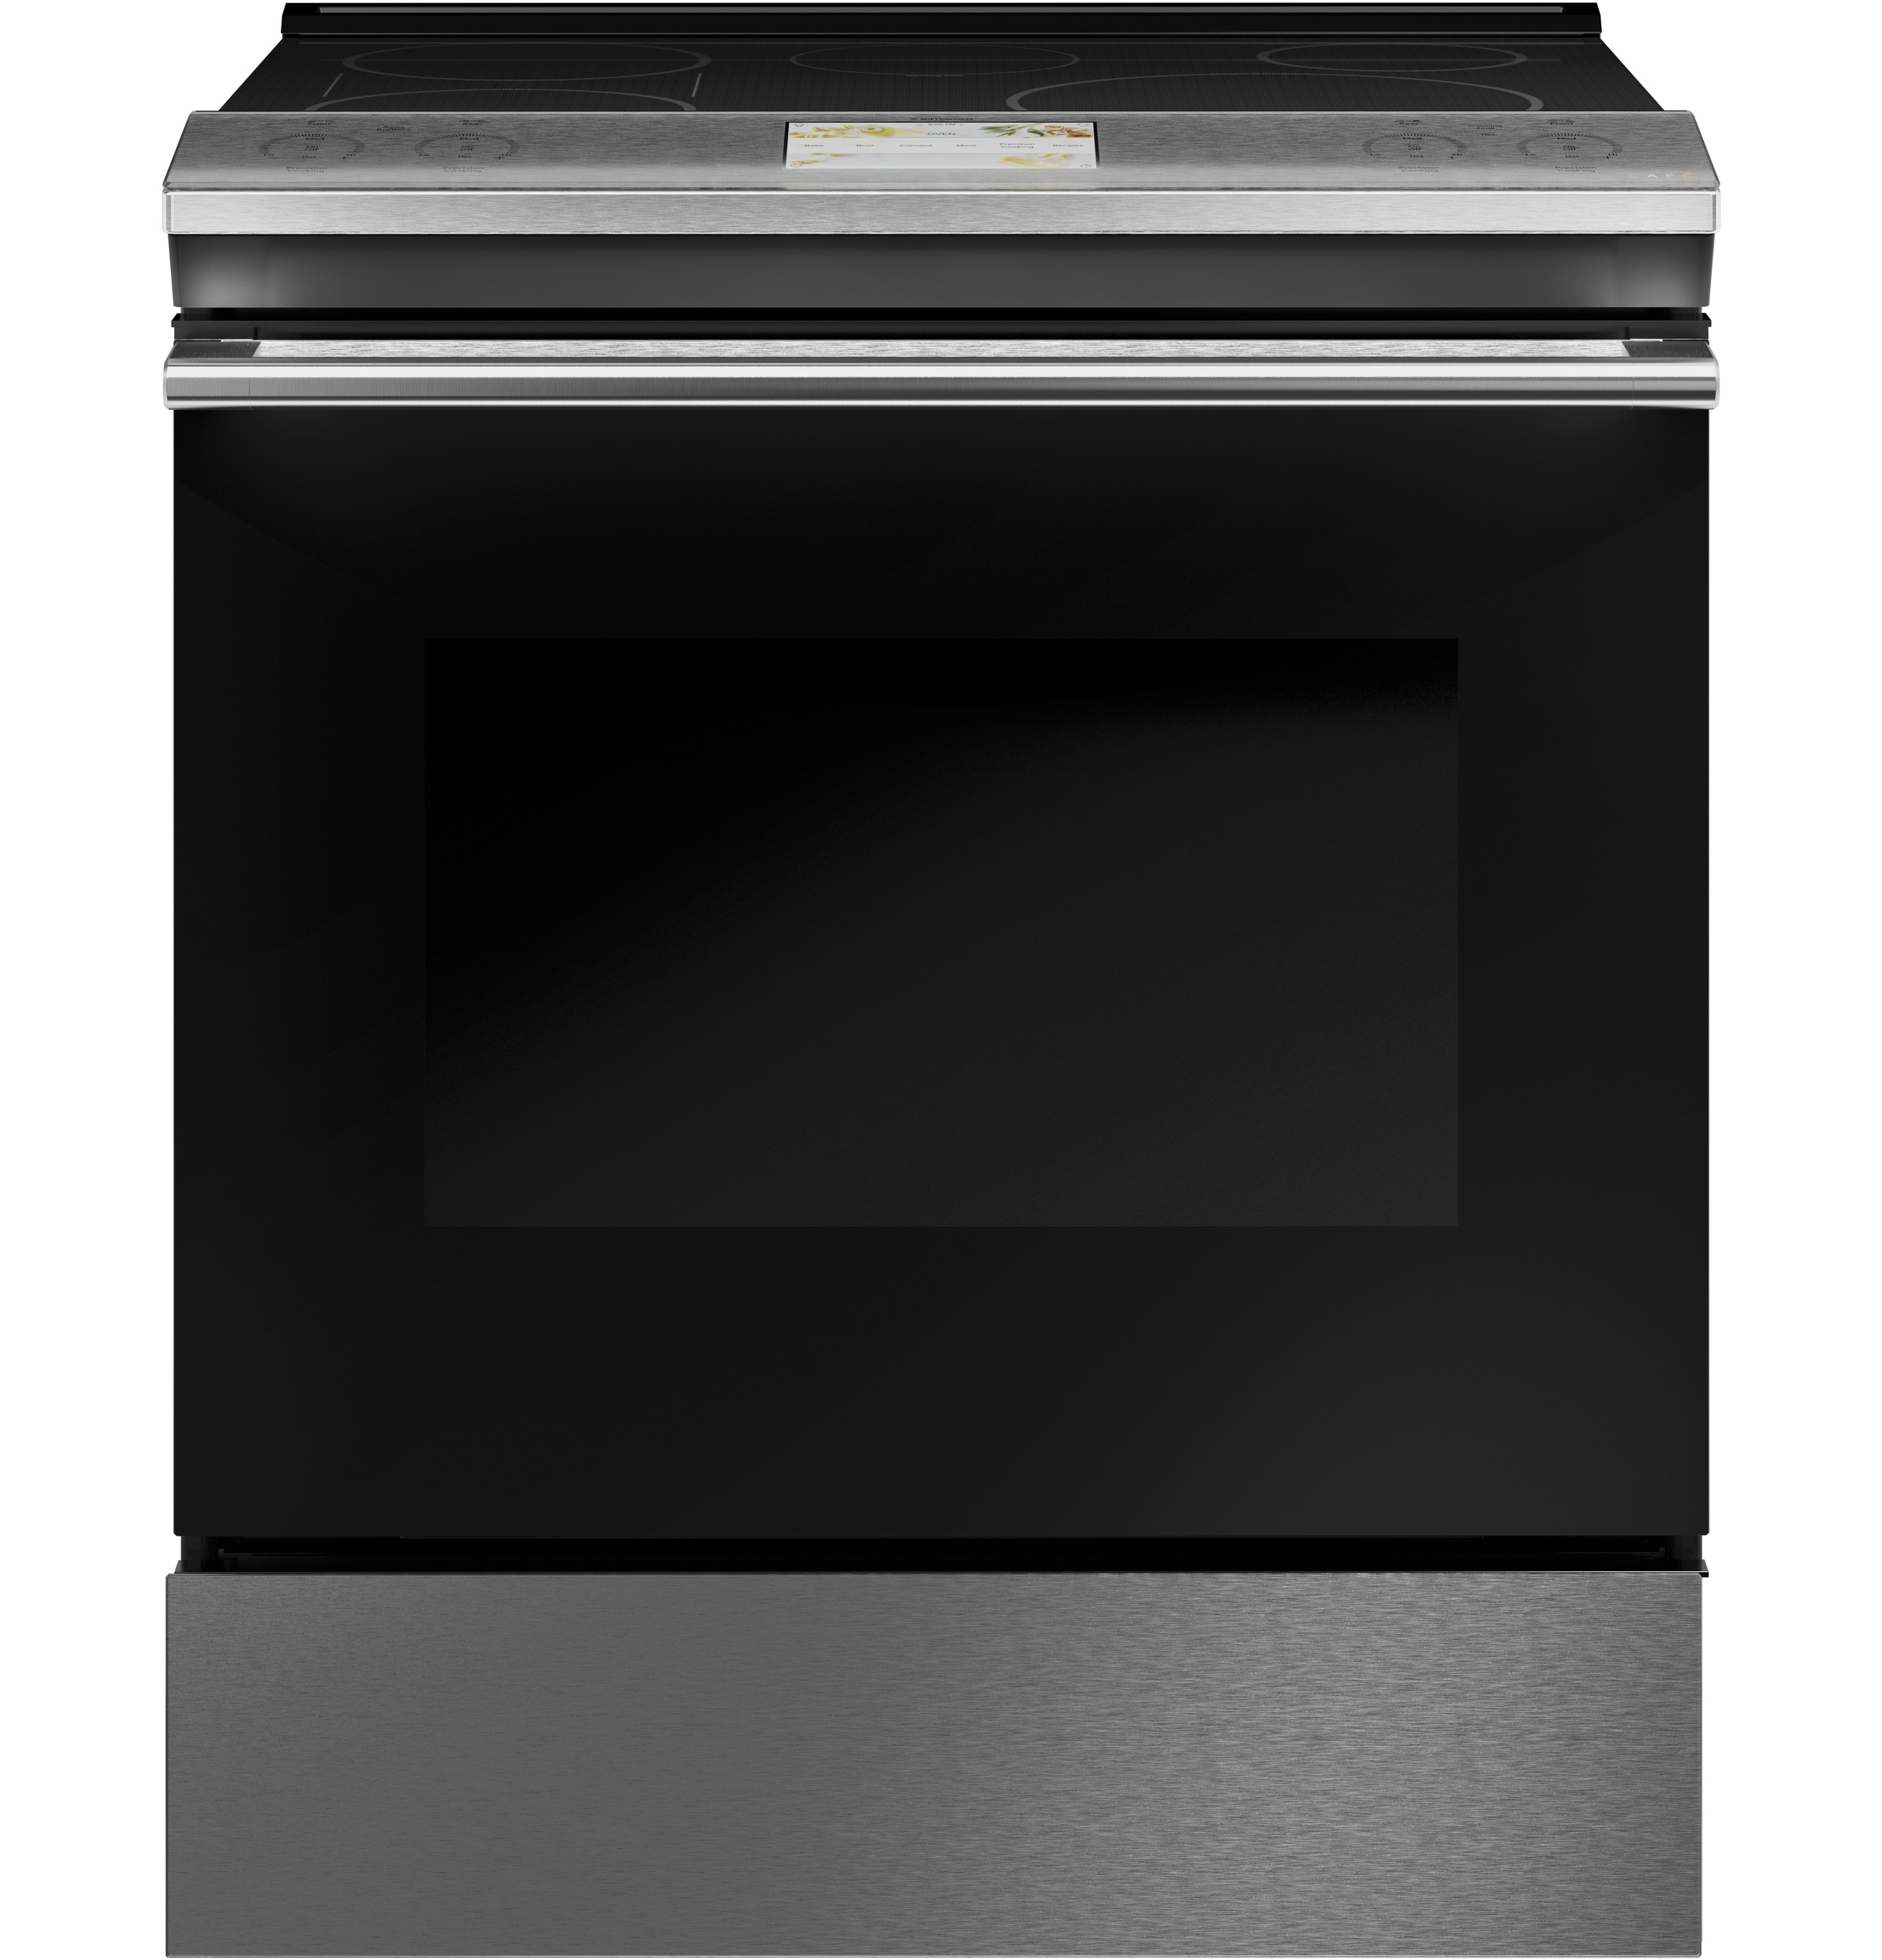 "Cafe Café™ 30"" Smart Slide-In, Front-Control, Induction and Convection Range in Platinum Glass"